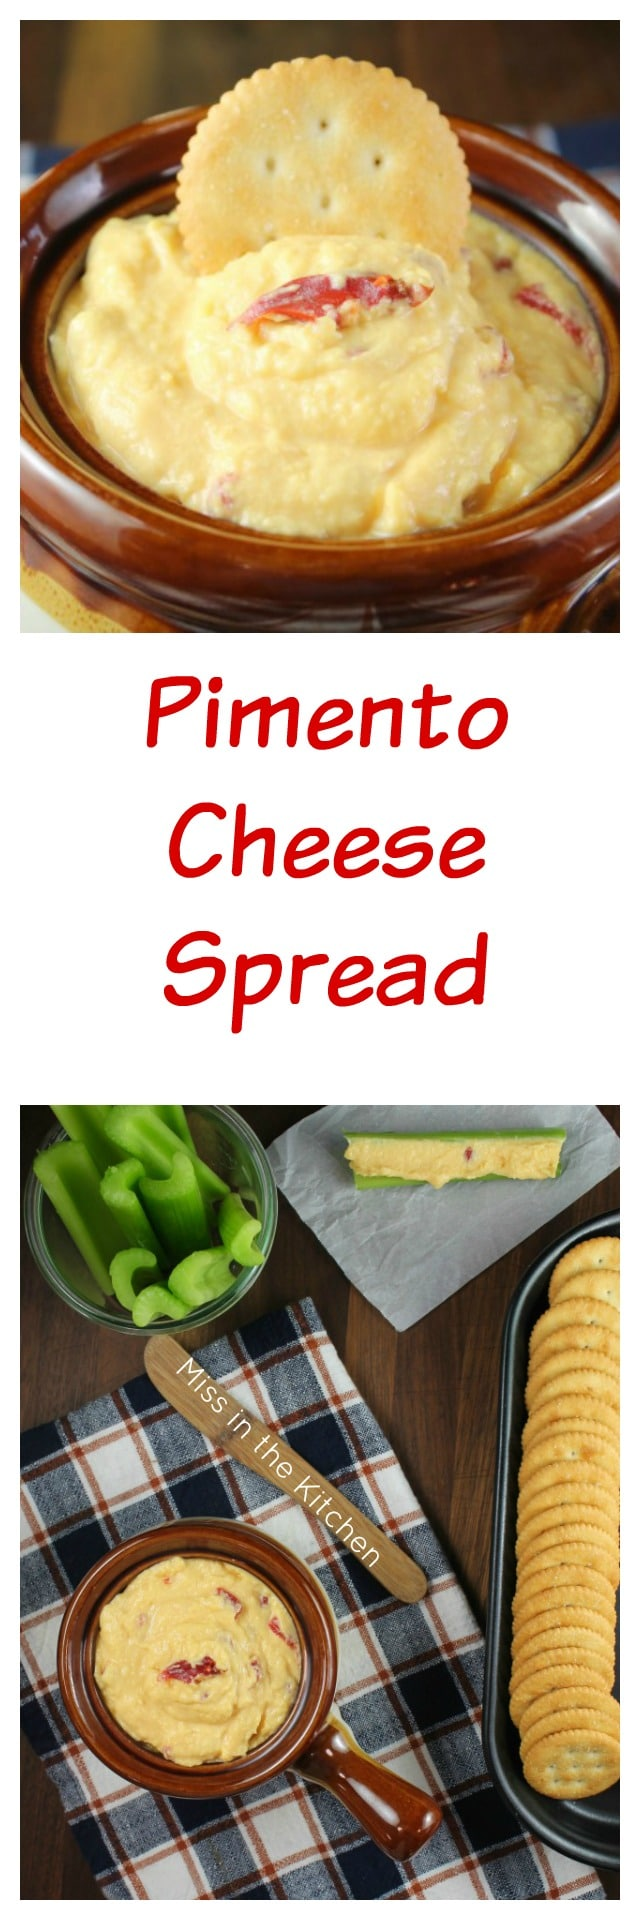 Pimento Cheese Spread Appetizer Recipe for family parties and holiday dinners from MissintheKitchen.com